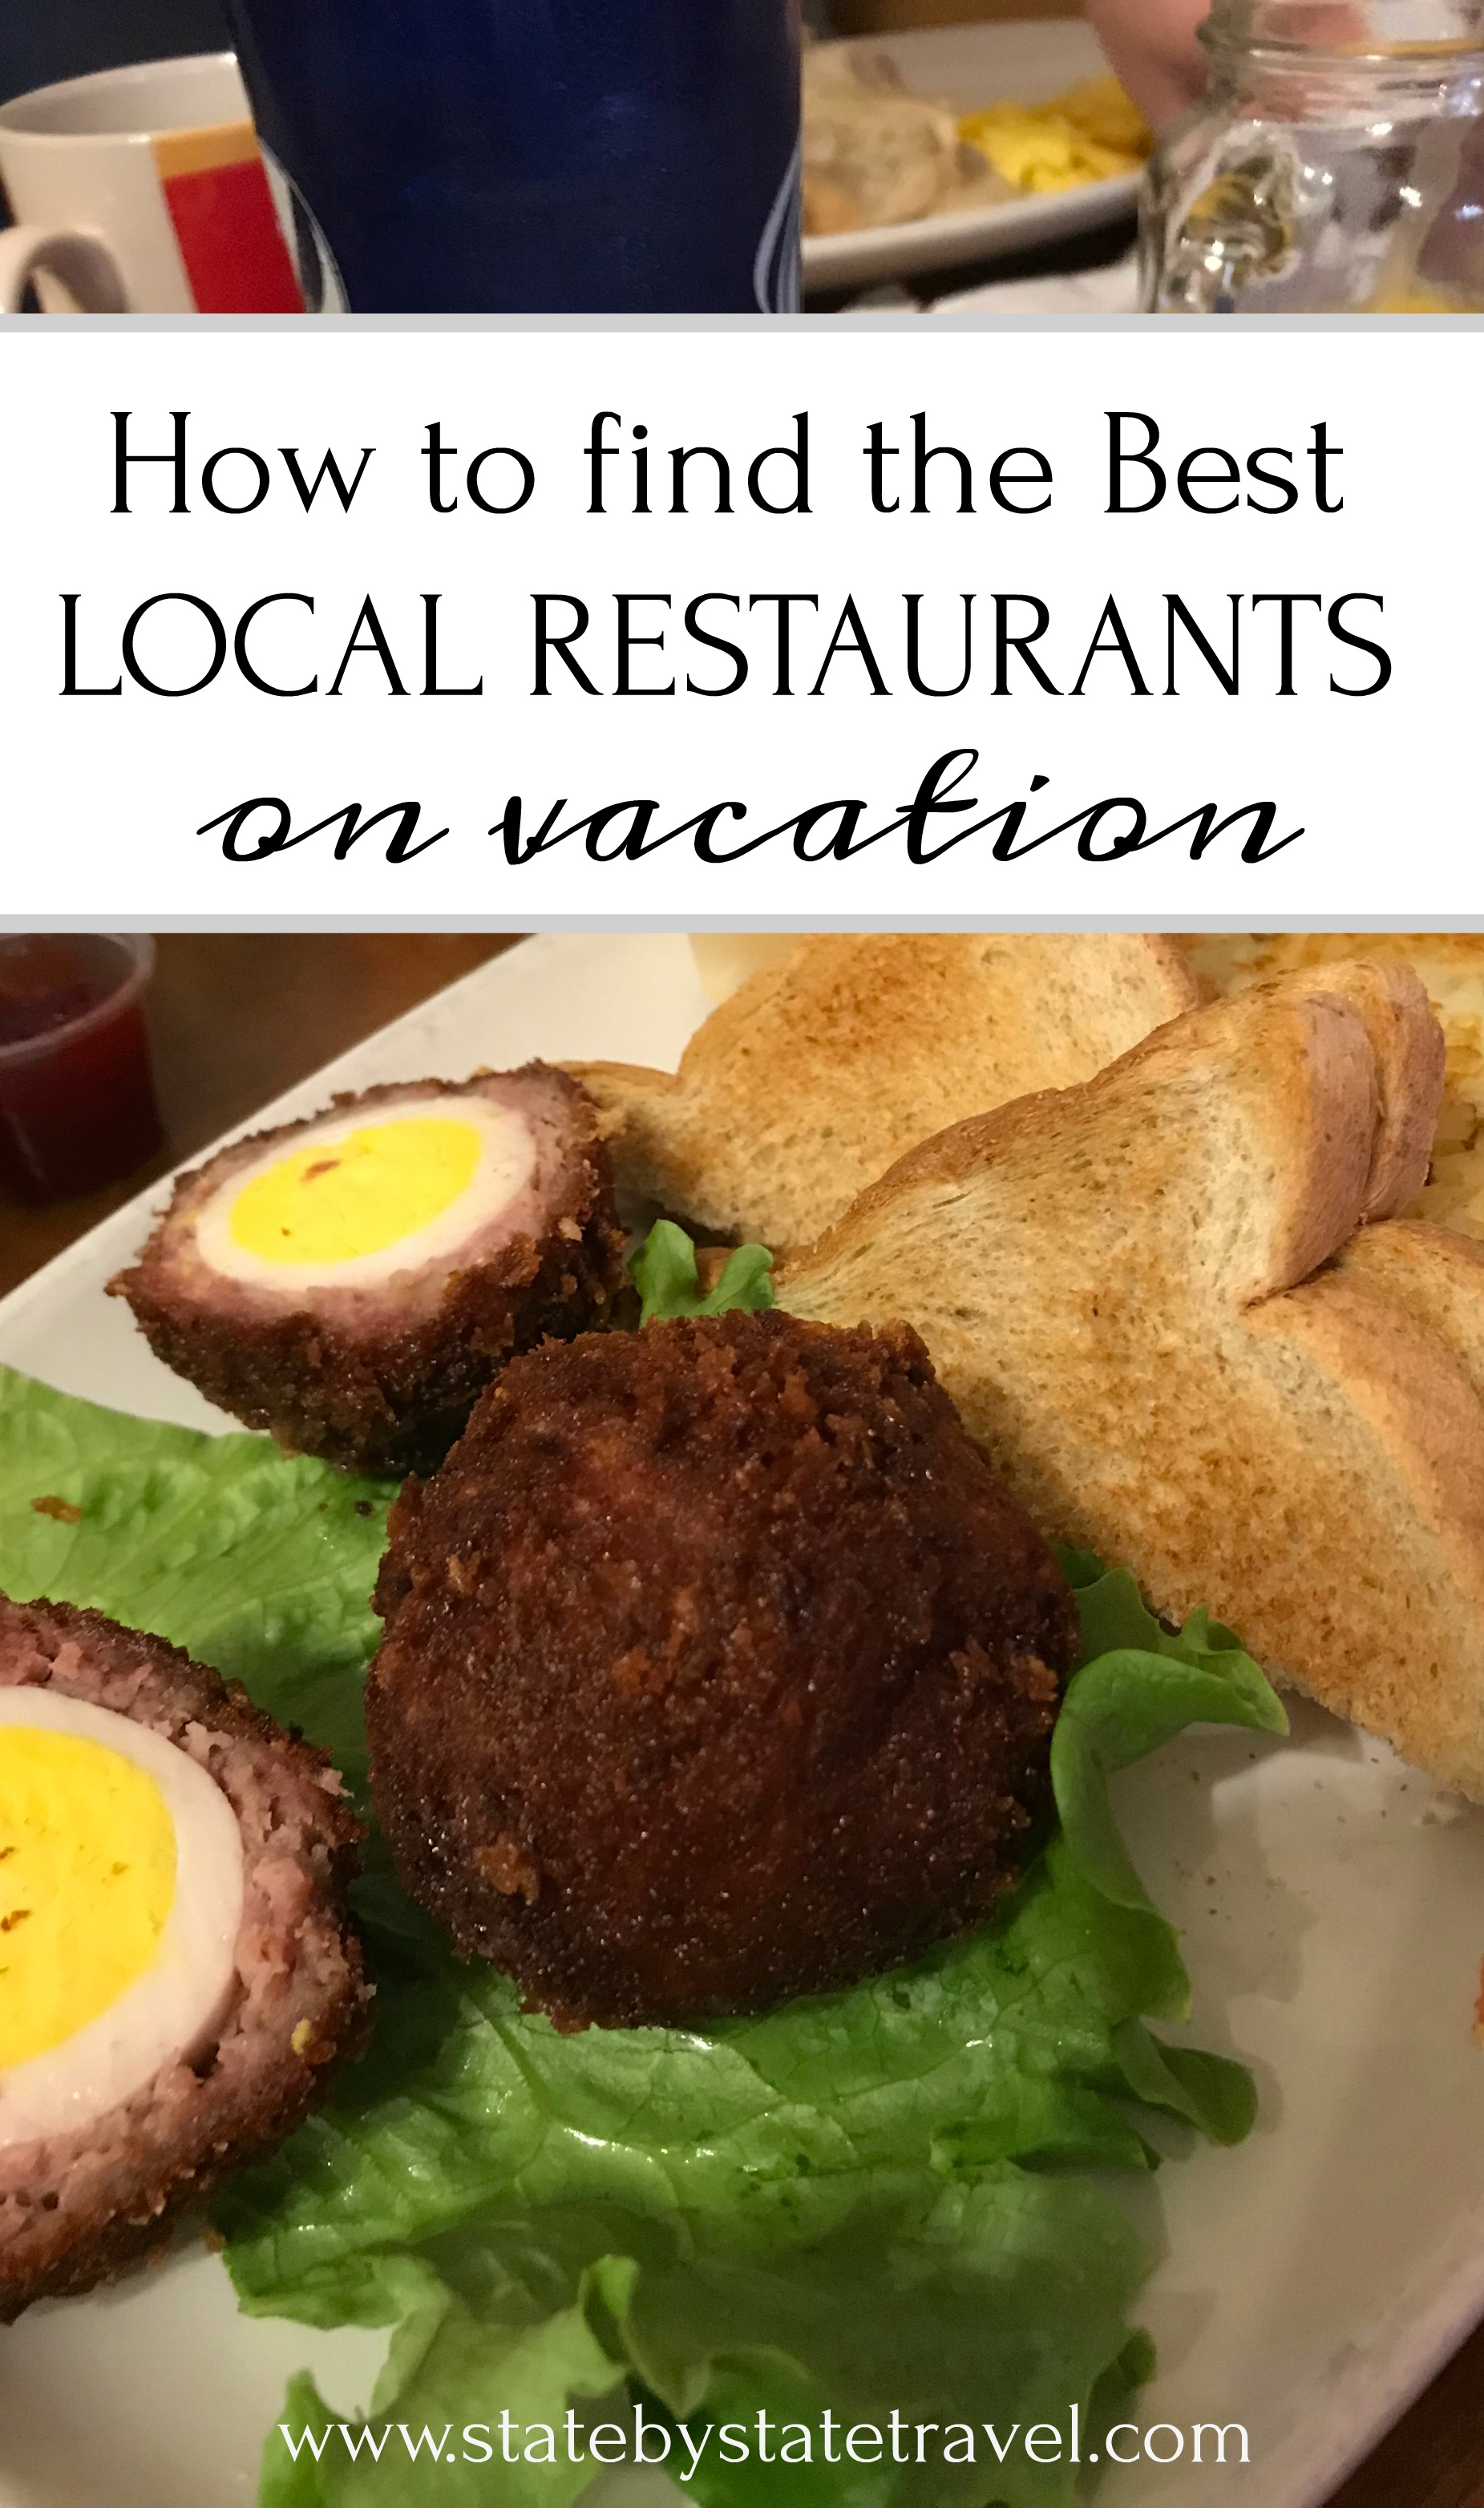 How to find the Best Local Restaurants